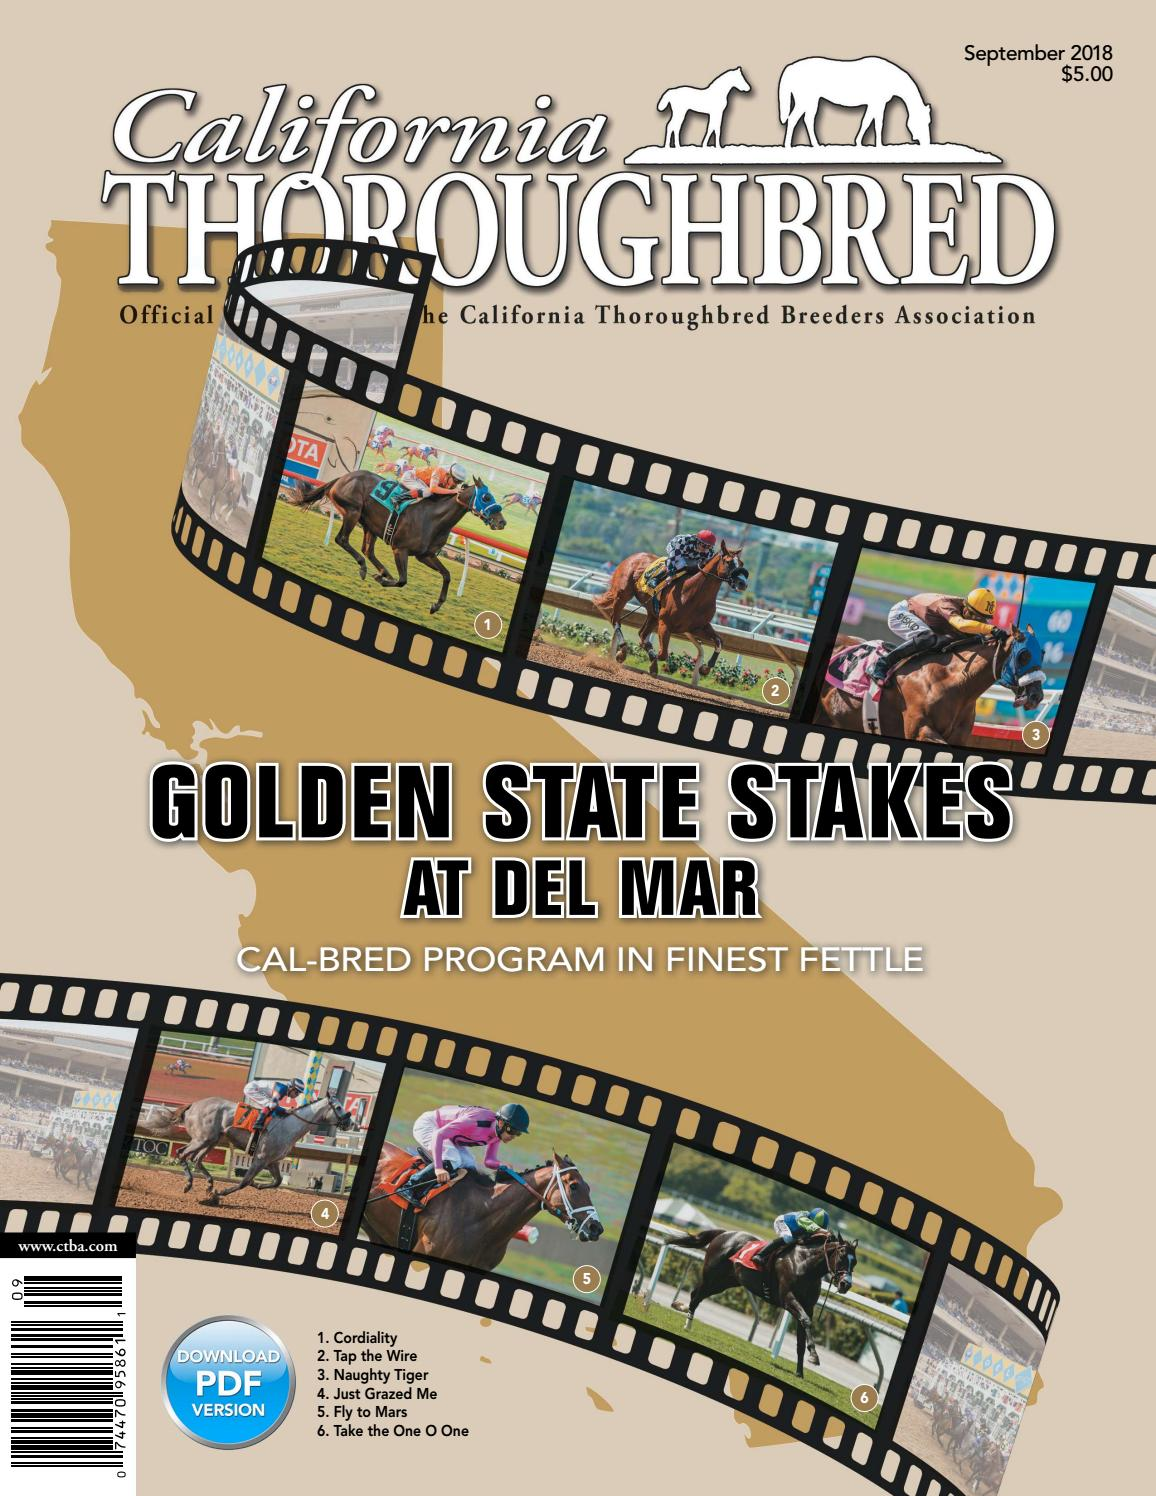 California Thoroughbred Magazine September 2018 by CTBA - issuu on e30 auxiliary fan wiring diagram, oil fired furnace fan center relay wire diagram, entertainment center wiring diagram, fan wiring color code, fan control wiring diagram, fan limit switch wiring, hvac fan control relay diagram,